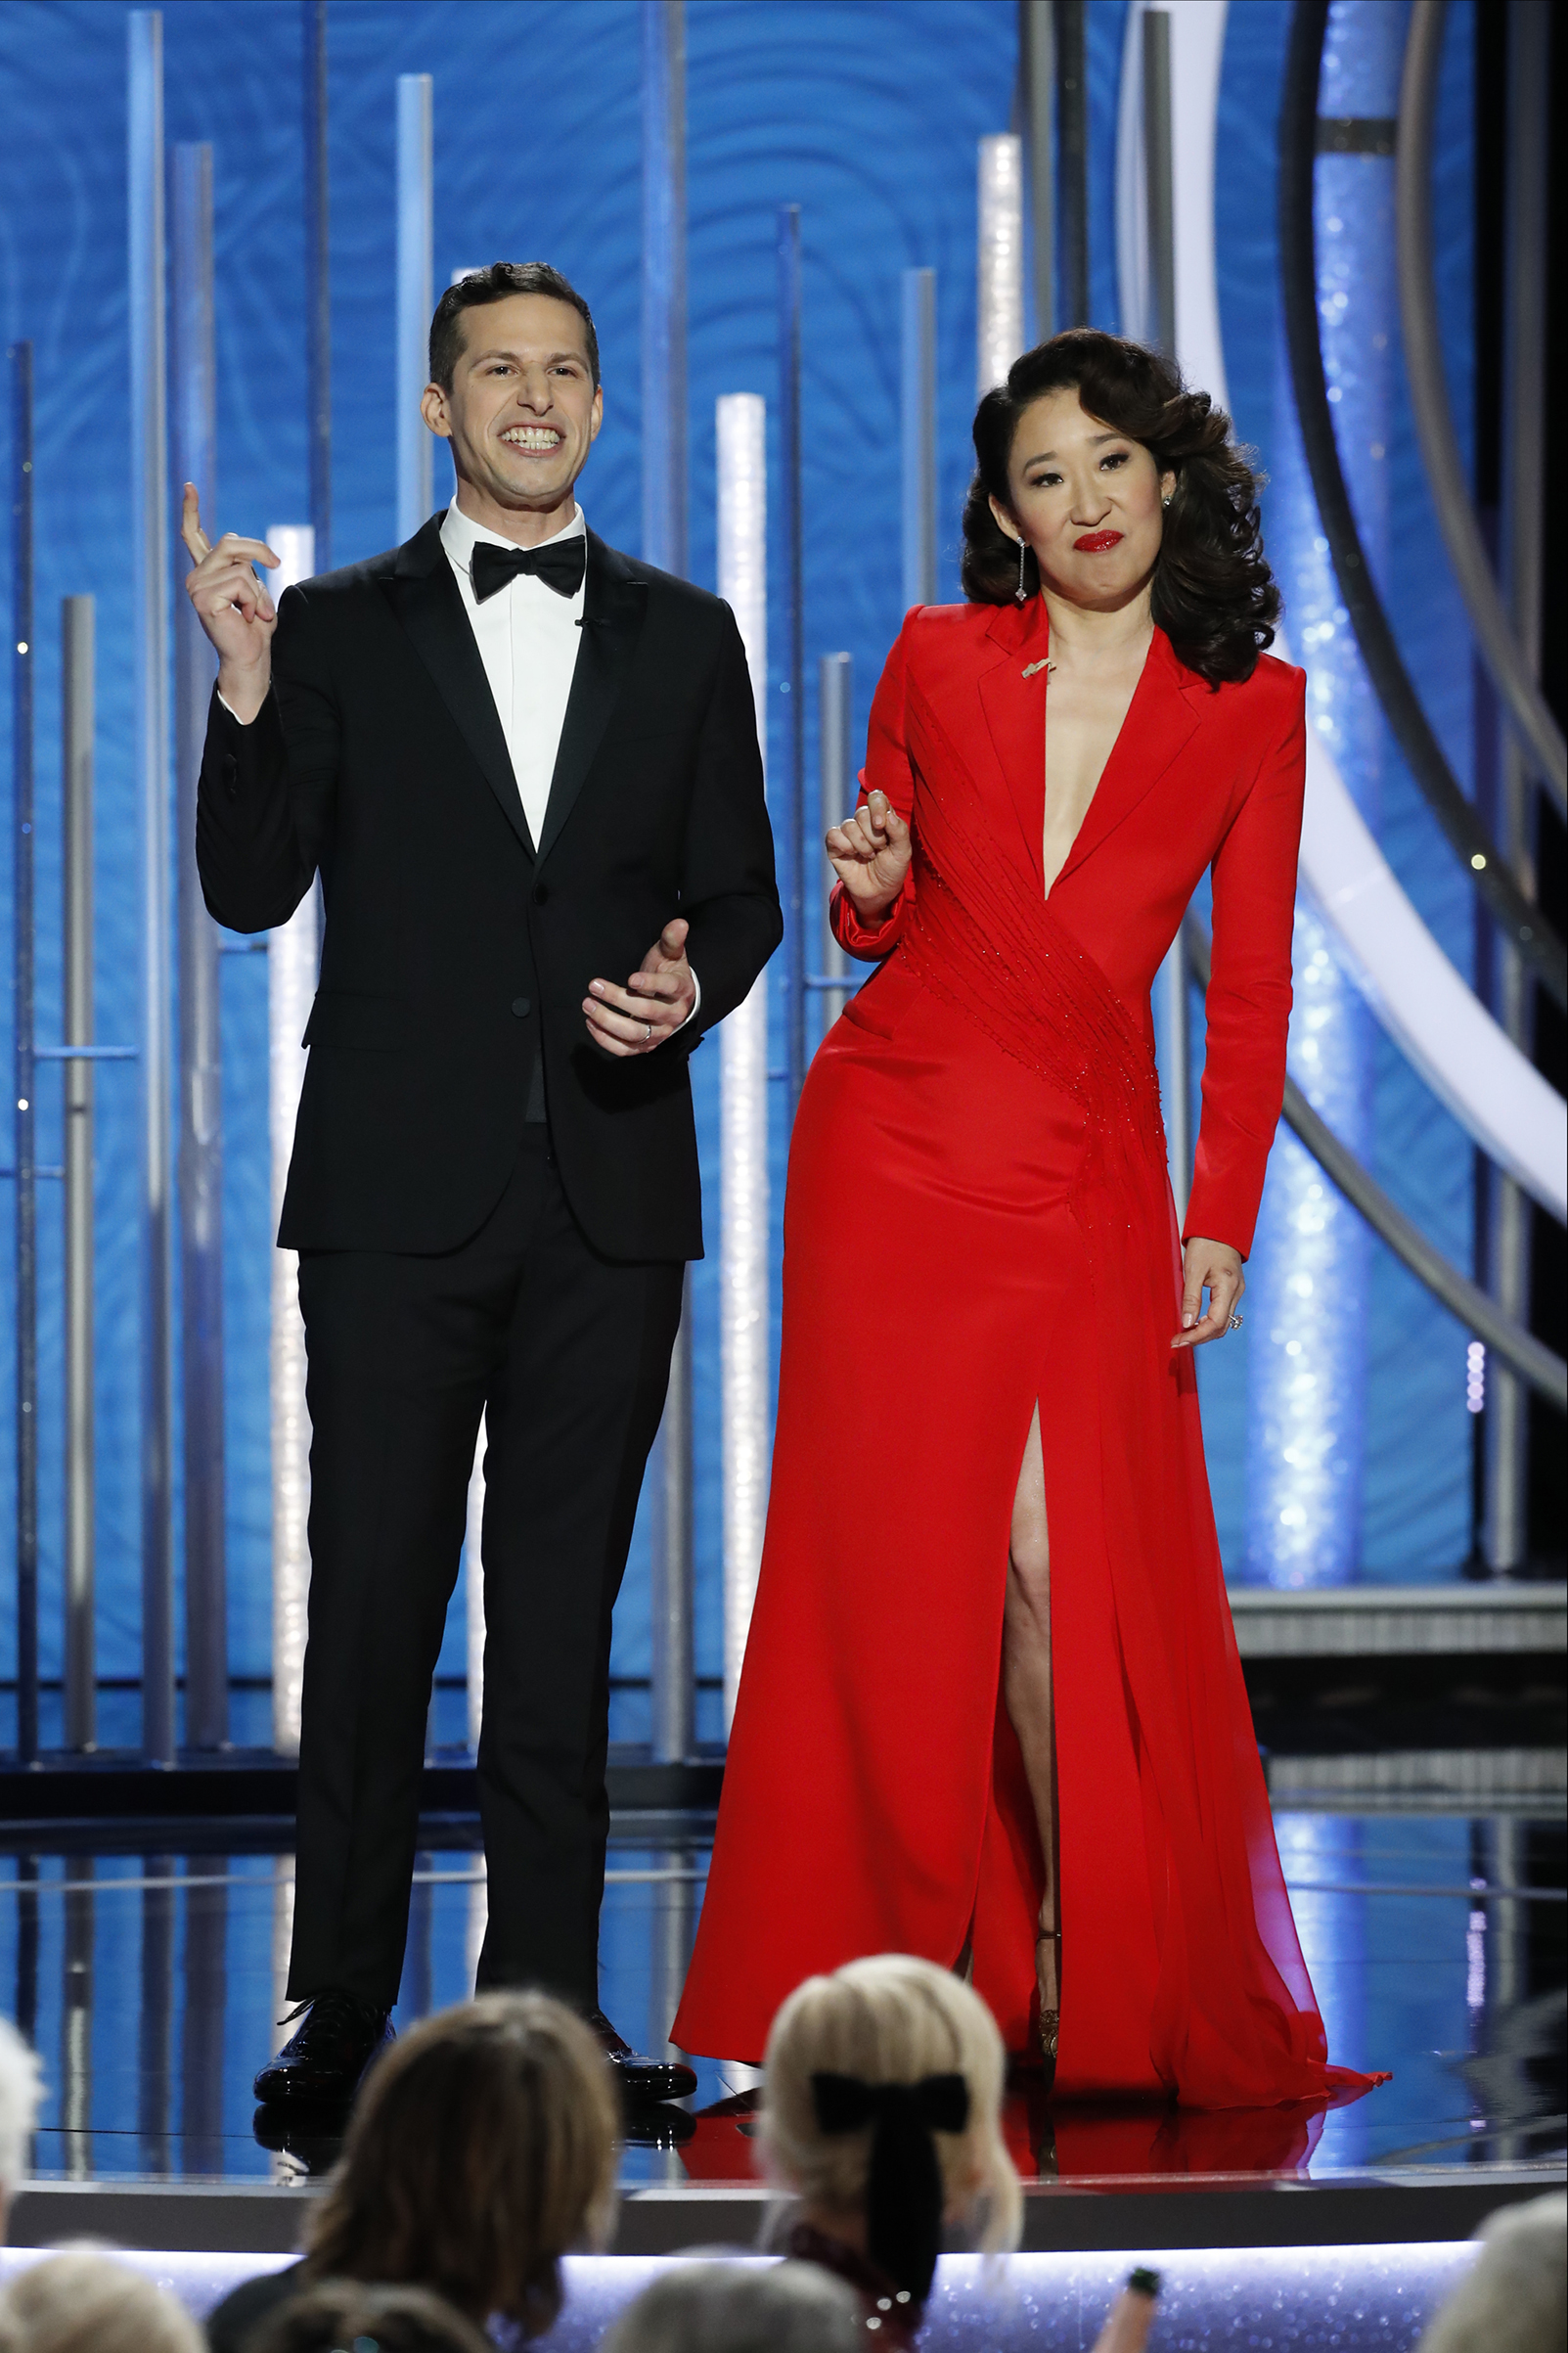 Hosts Andy Samberg and Sandra Oh  speak onstage during the 76th Annual Golden Globe Awards.